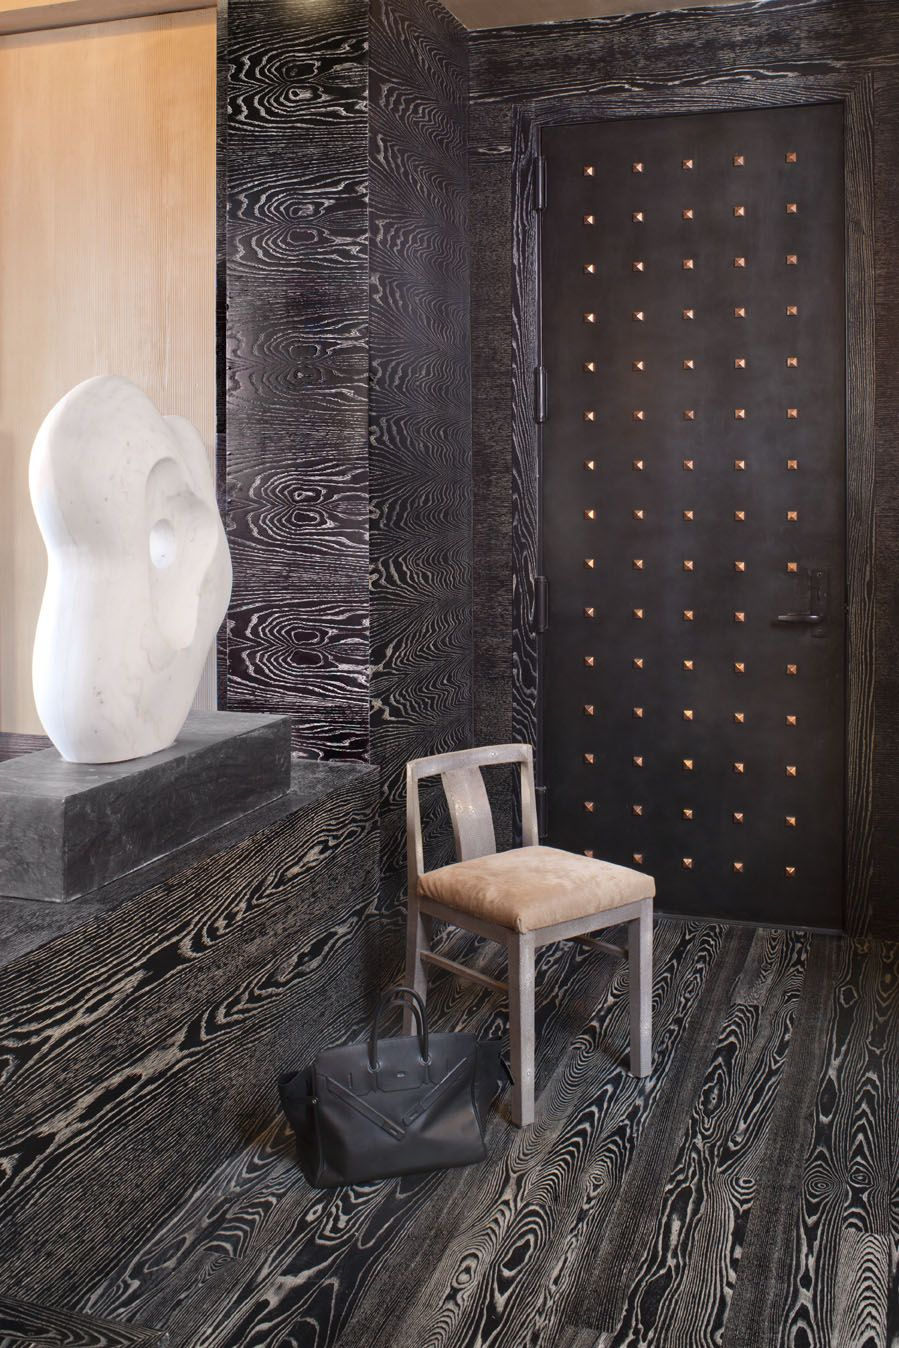 Modern take on wood grain high contrast pattern kelly wearstler black cerused wood bathroom